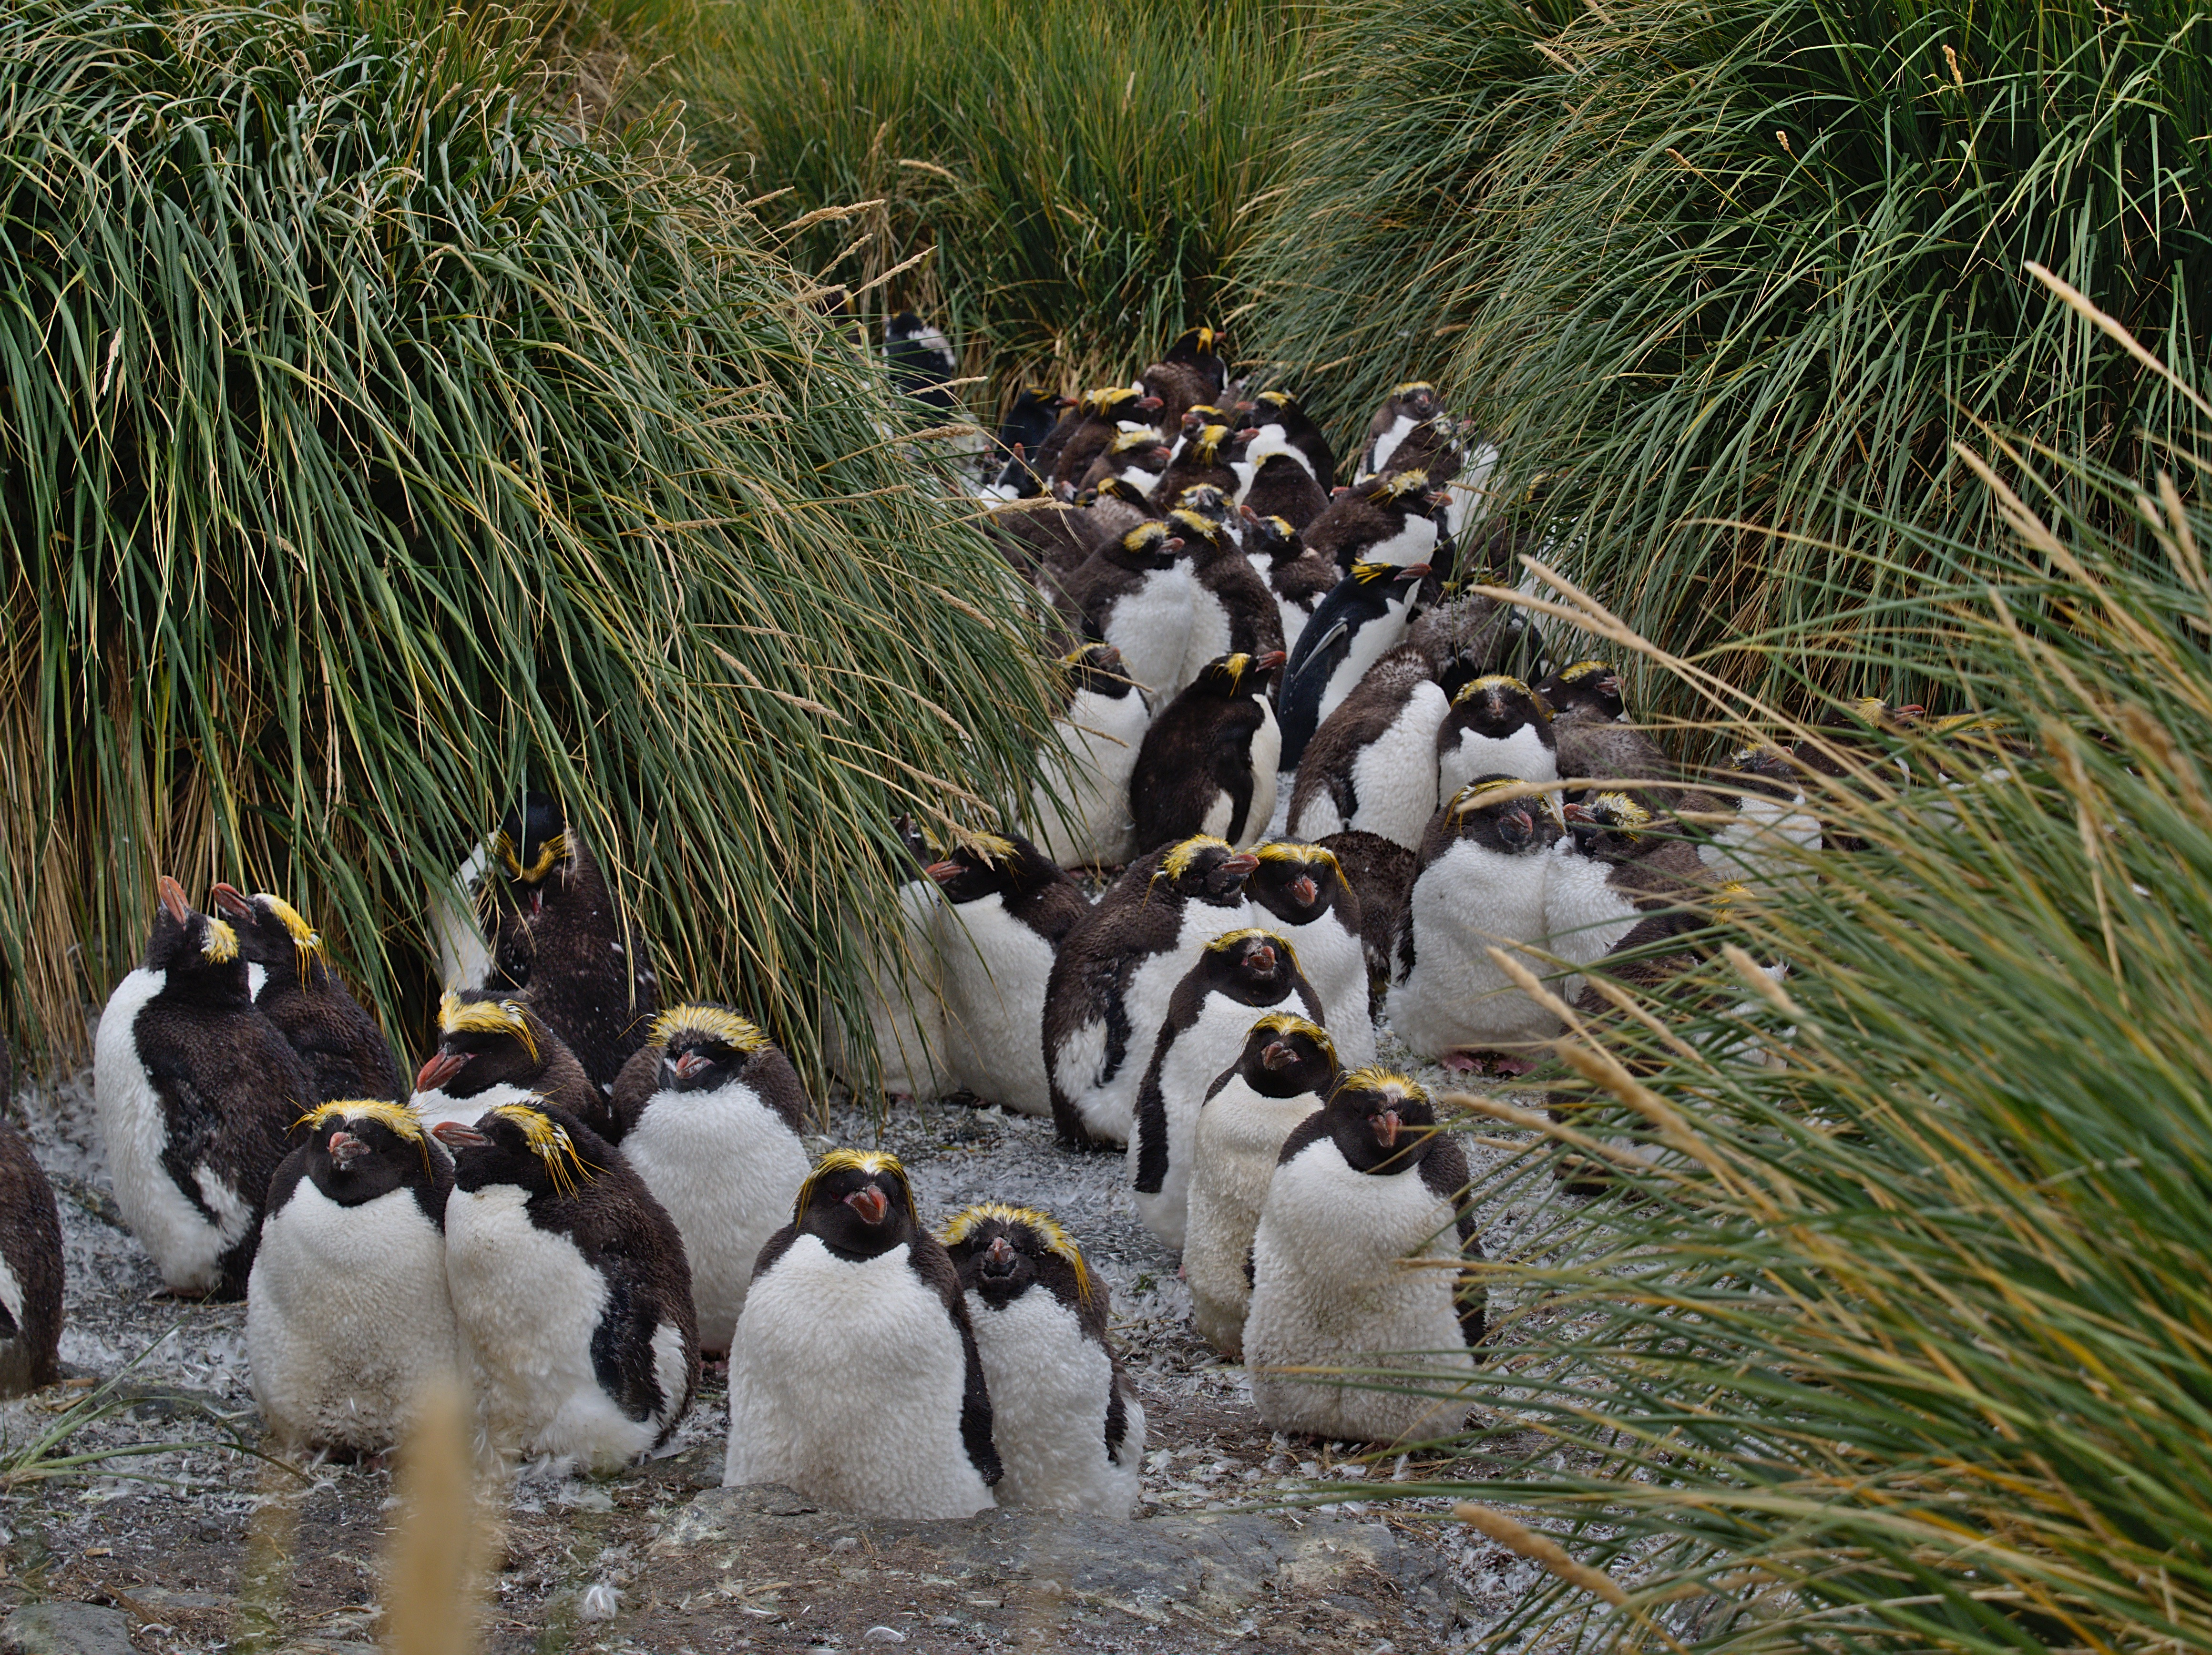 Macaroni penguins (by Paul Cameron)